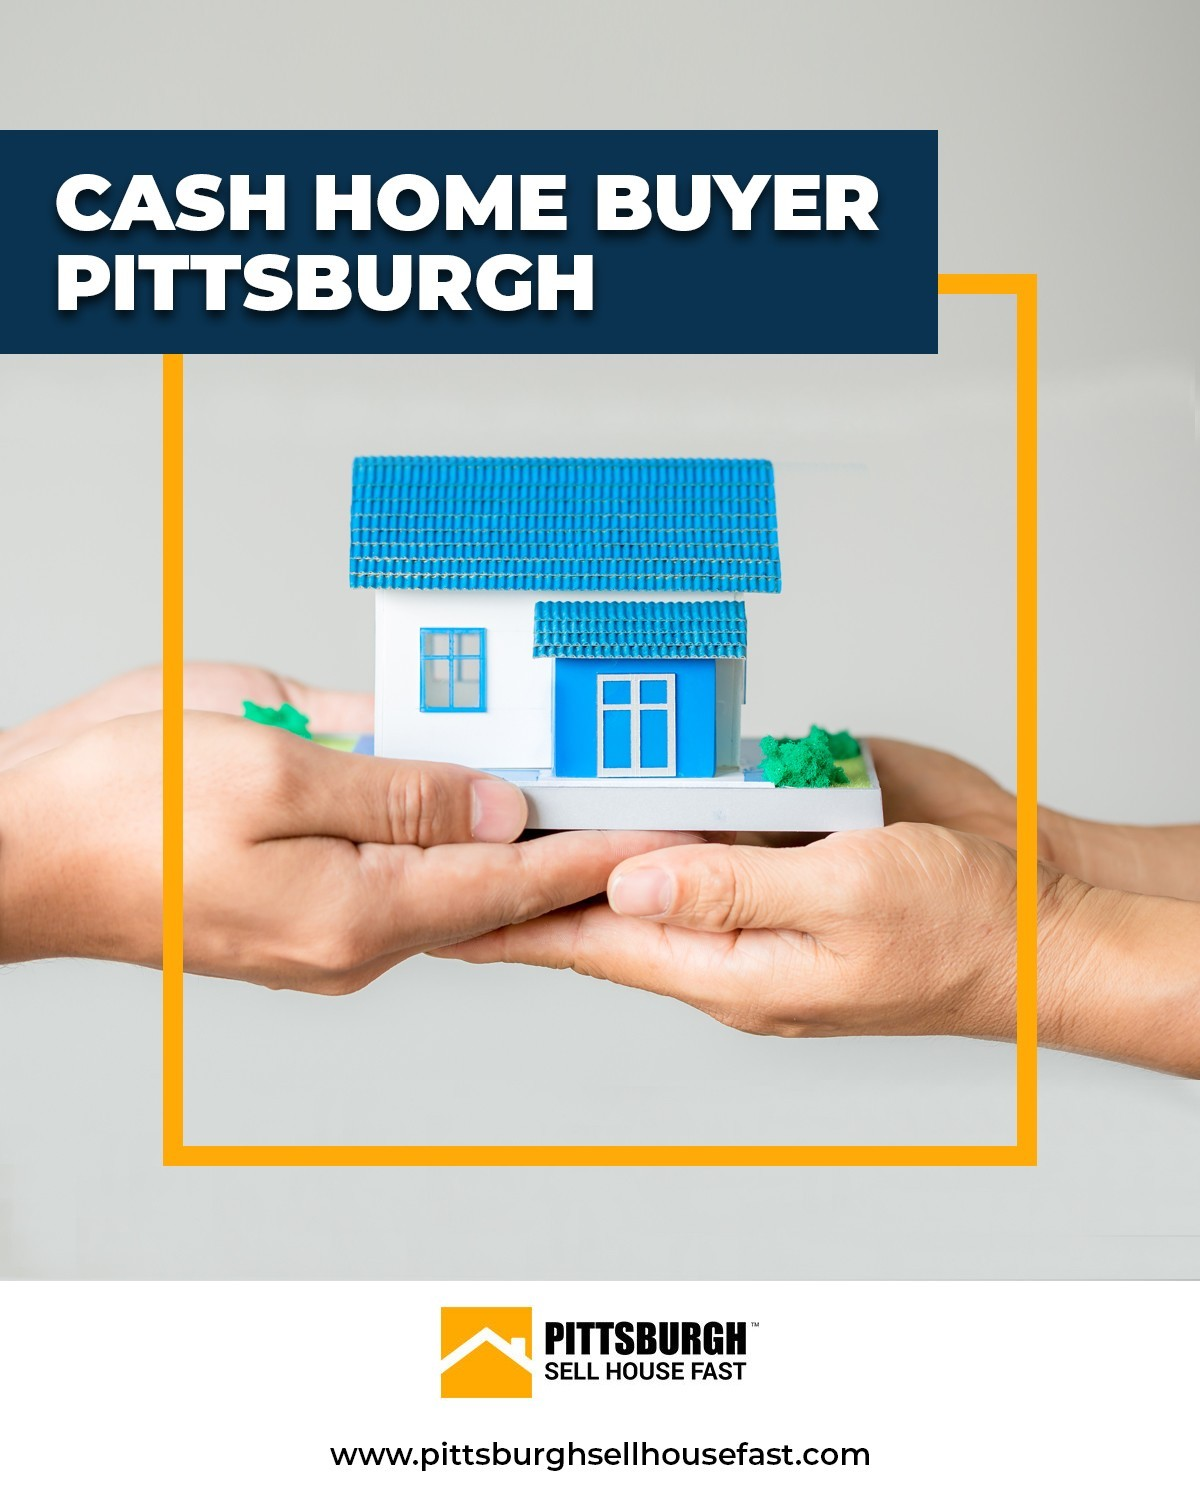 Best Cash Home Buyer in Pittsburgh   Pittsburgh Sell House Fast